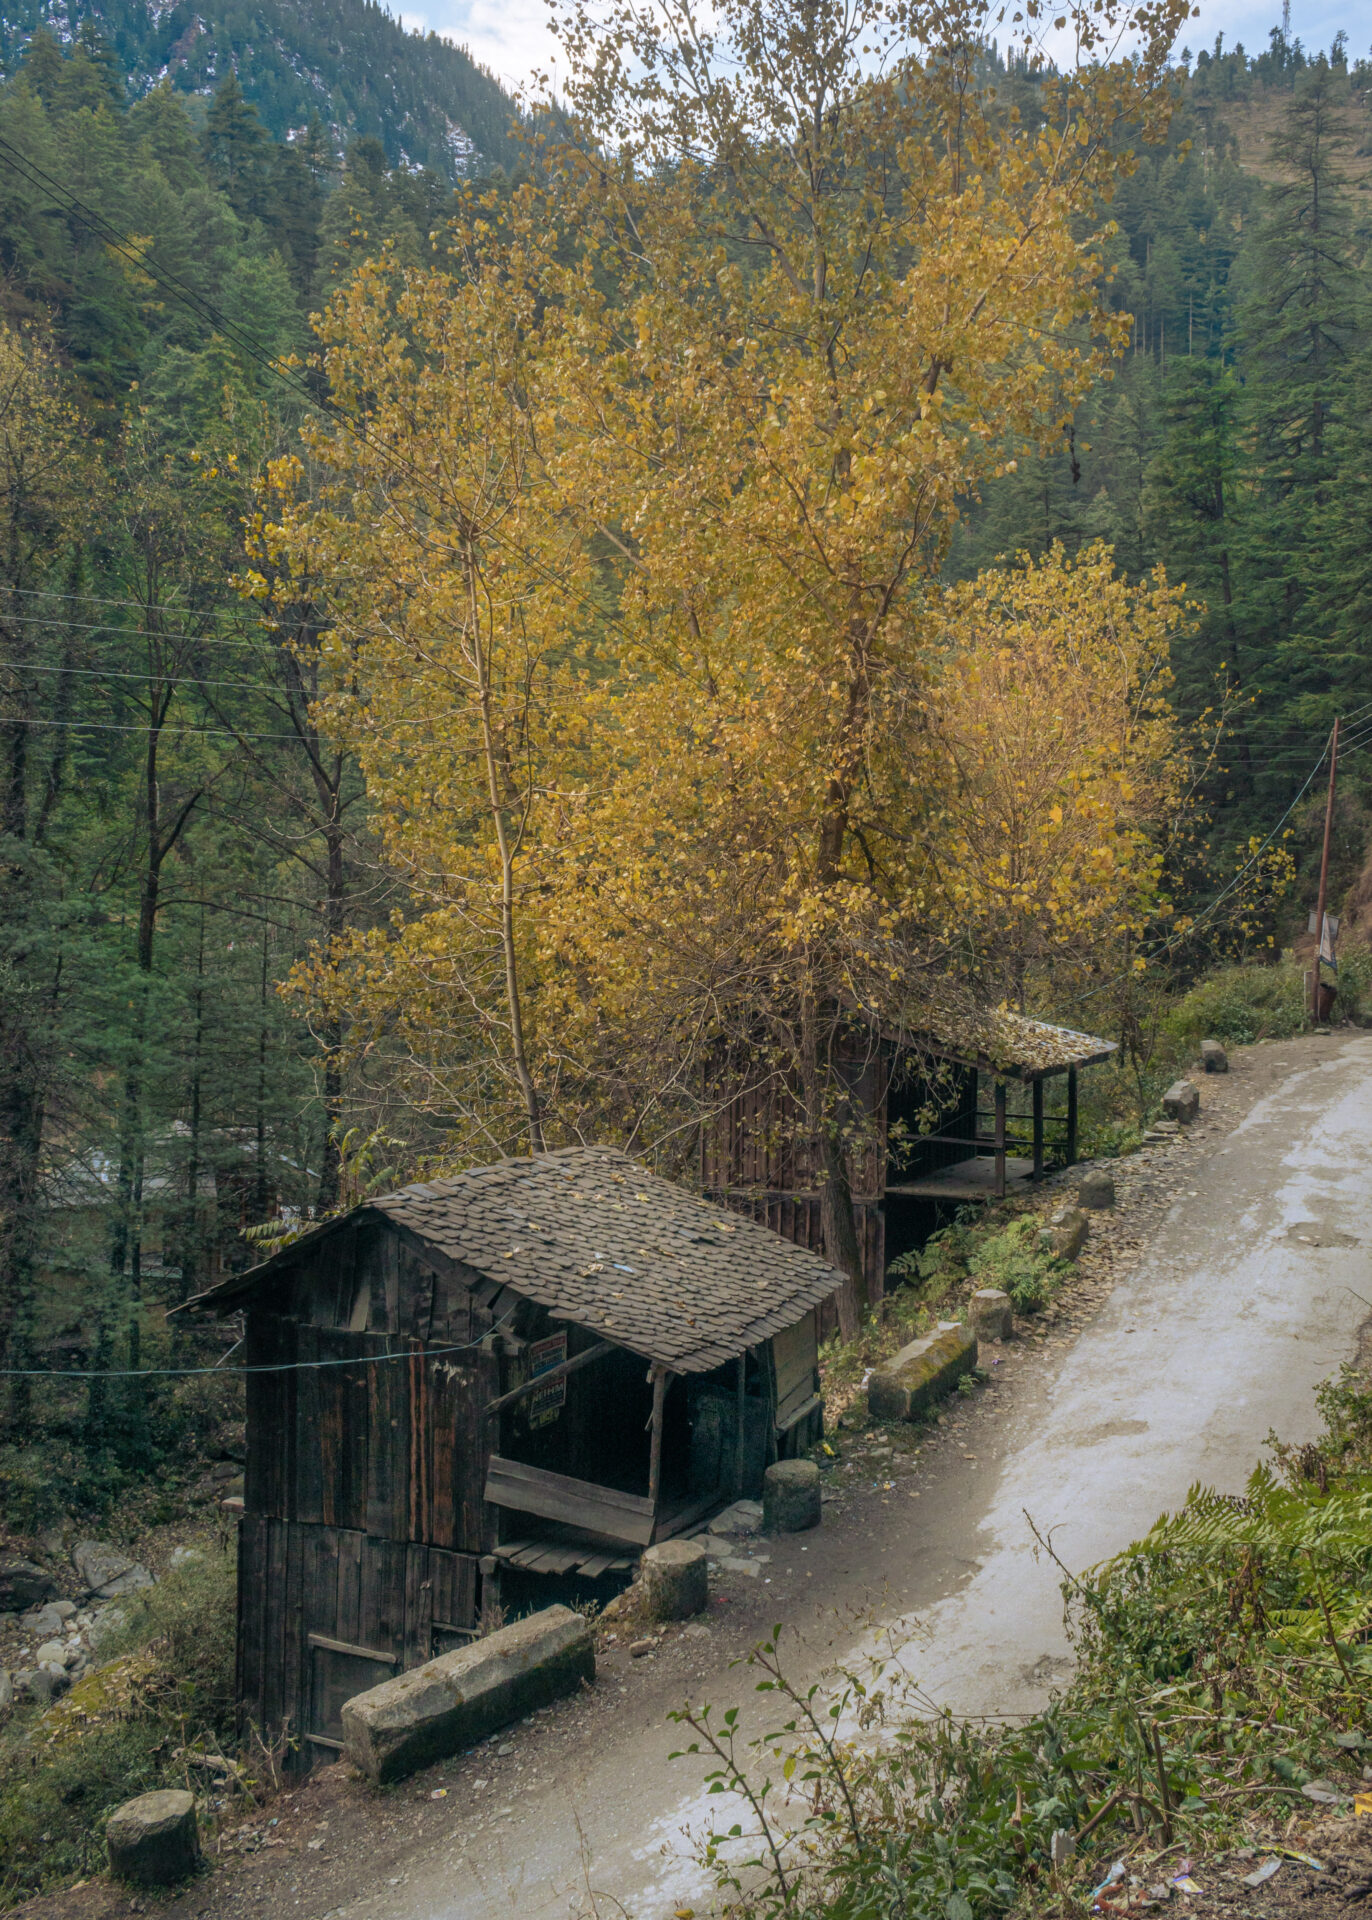 The Autumn color tree and a small house in Jibhi Himachal